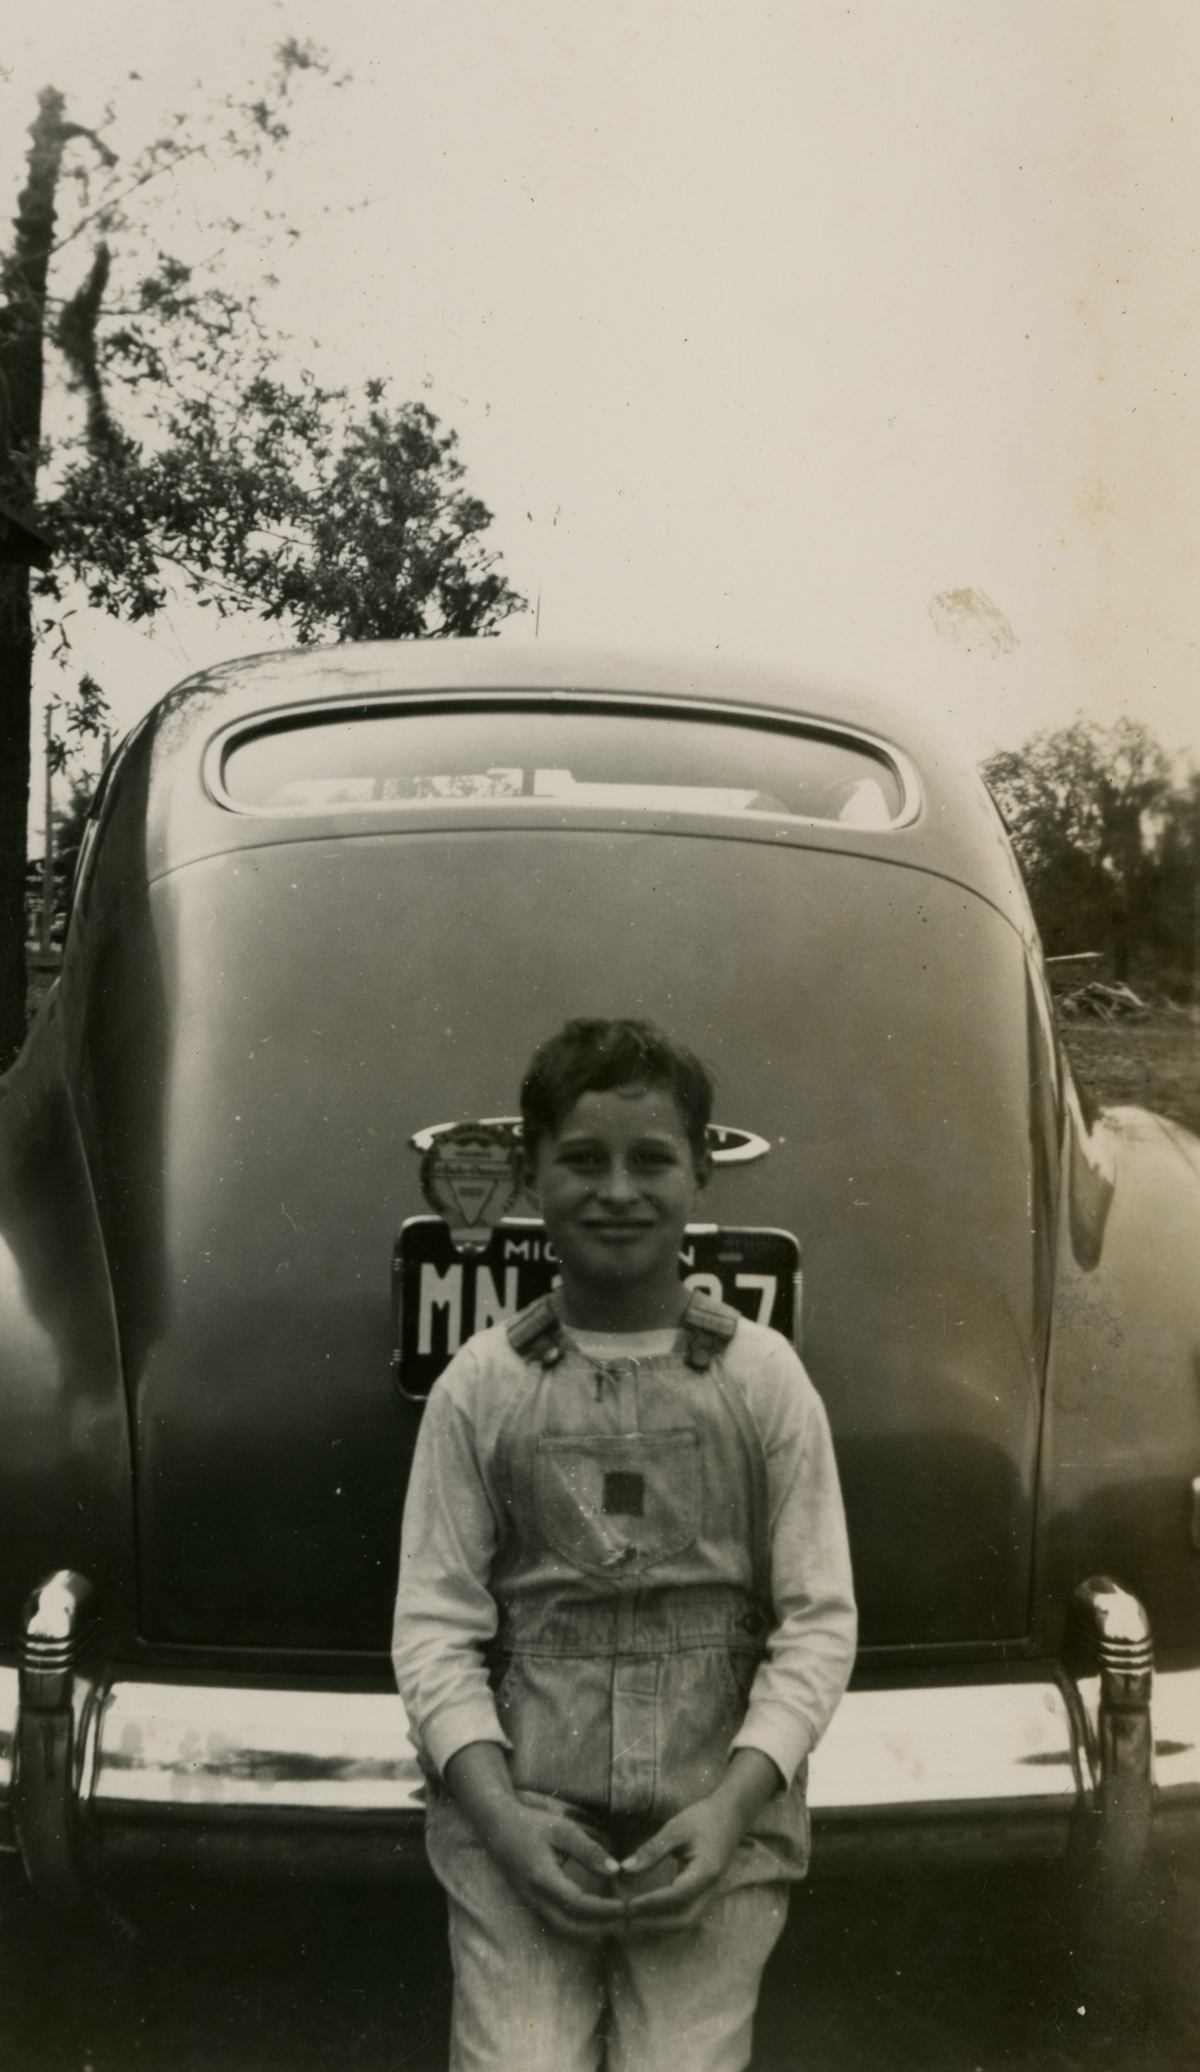 Hall family member from Michigan posing on the car bumper during Central Florida vacation.